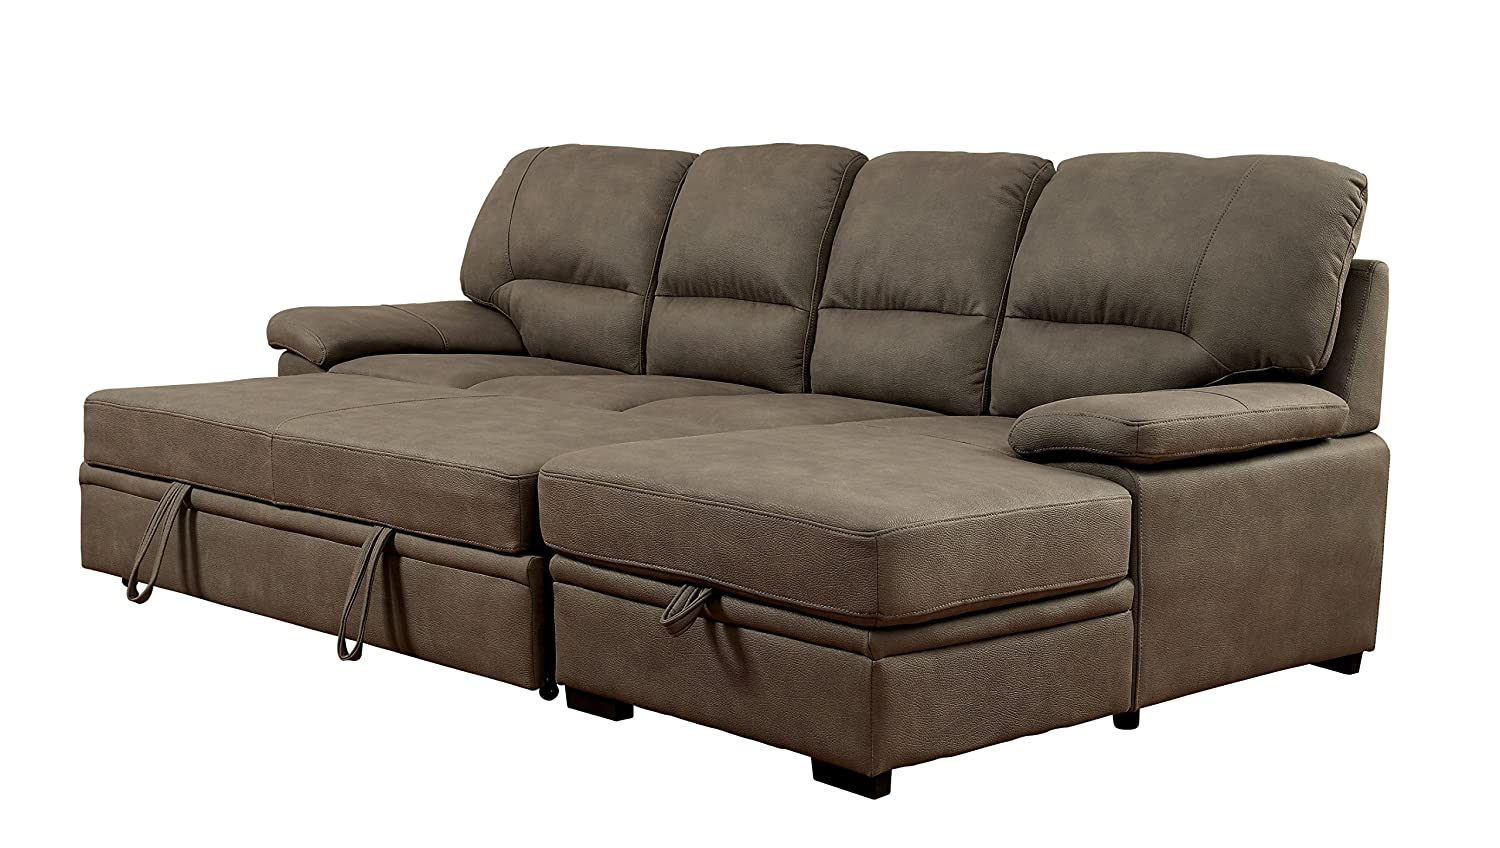 Furniture Of America Canby Contemporary Sectional With Sleeper Chaise Ash Brown